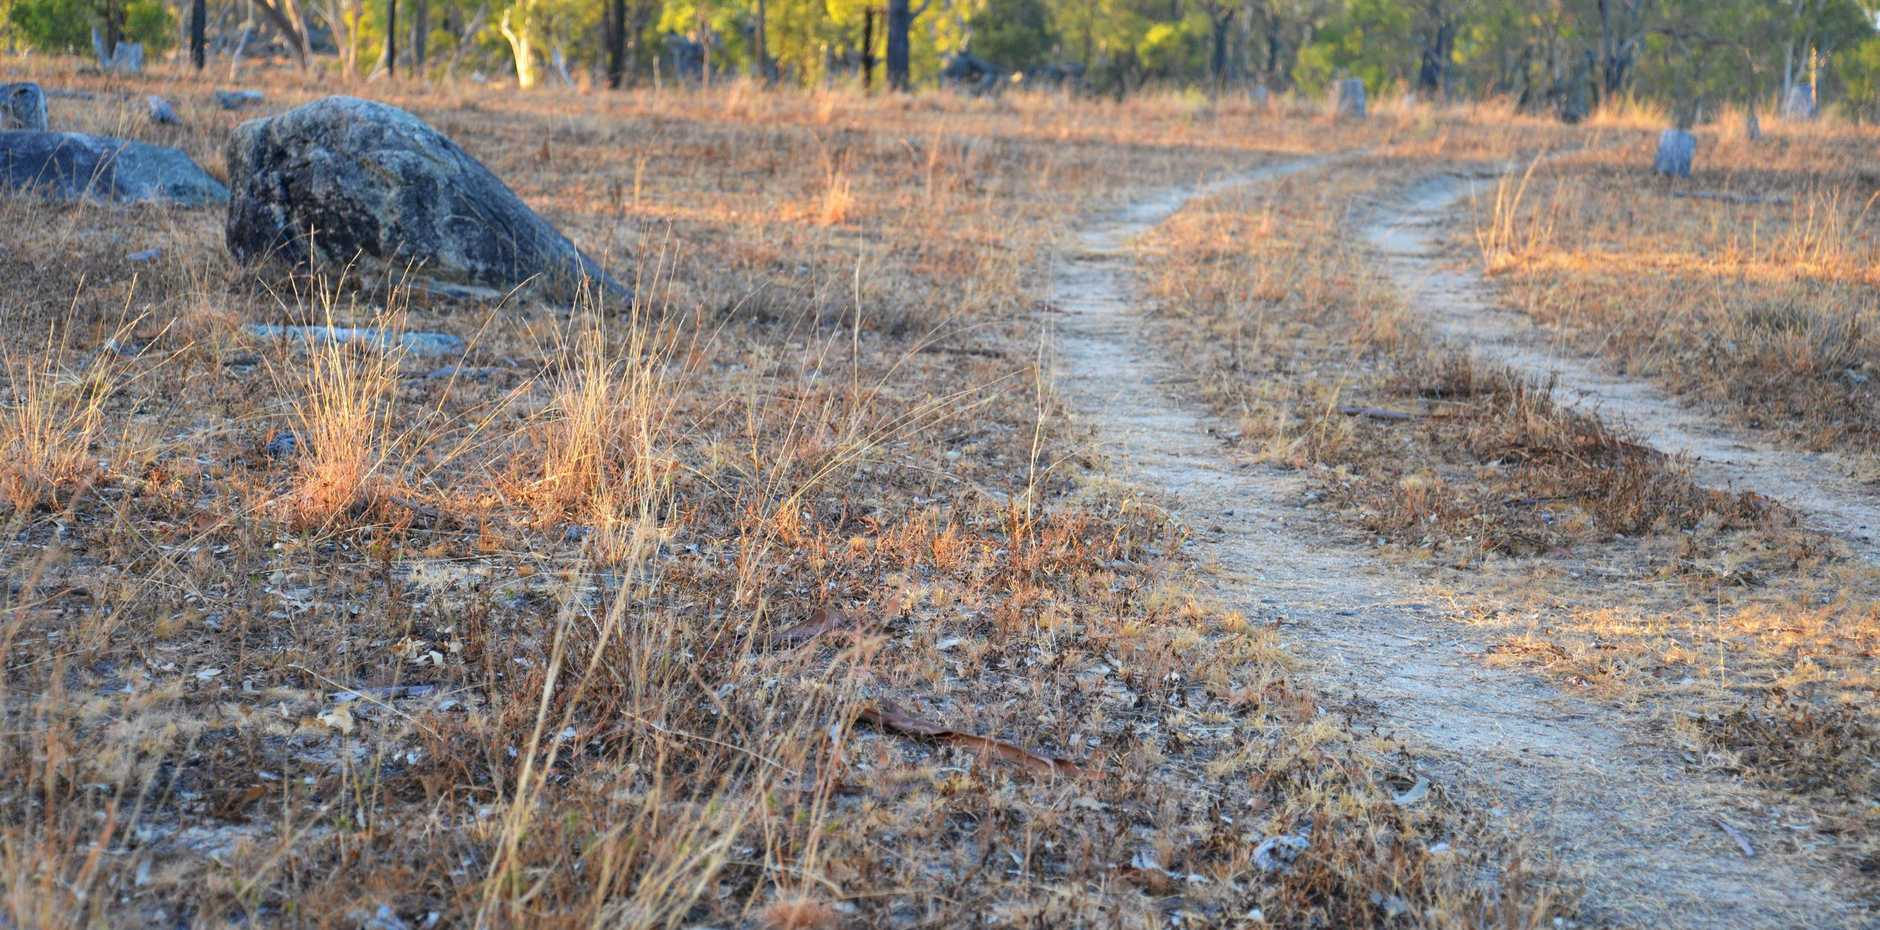 The dry grass at Greymare during one of the worst droughts in history.